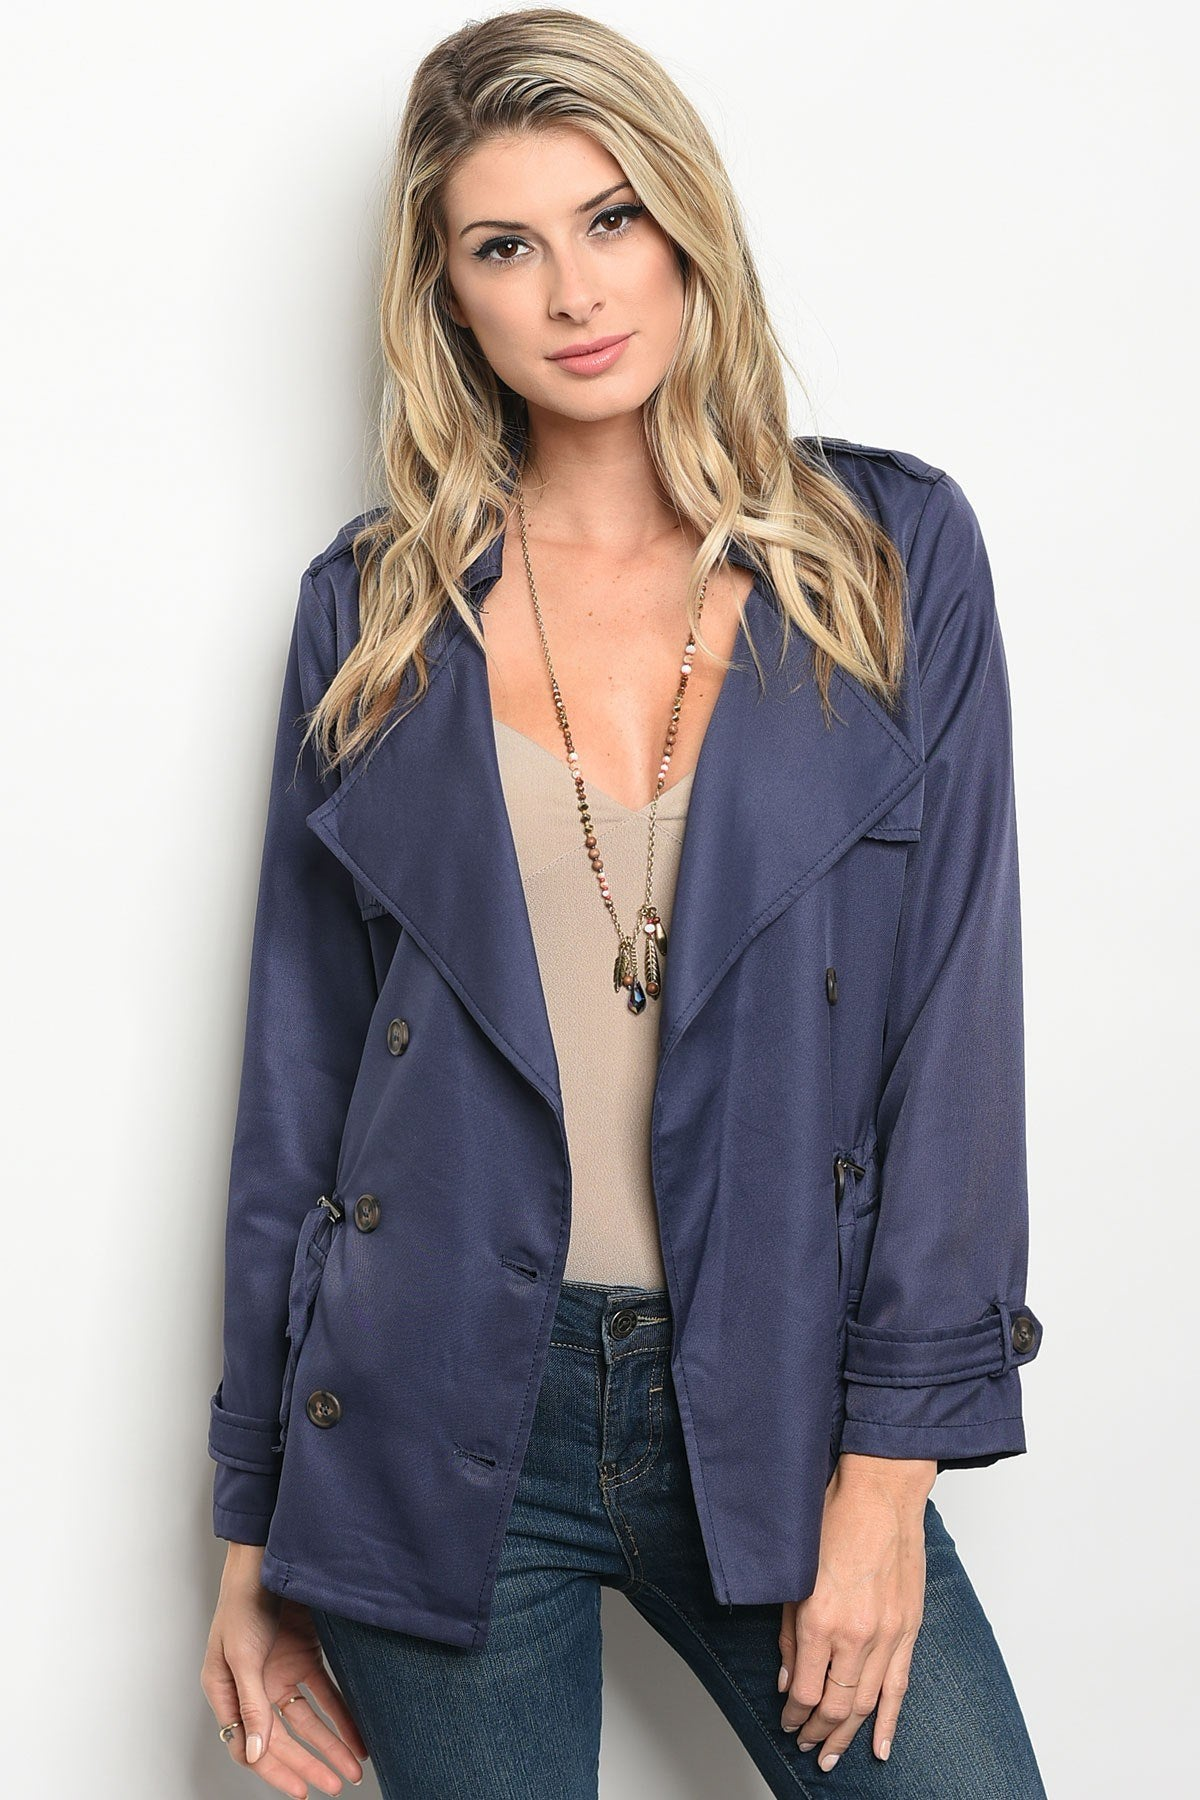 Ladies fashion long sleeve double breasted button up jacket with a collard neckline-S-MY UPSCALE STORE